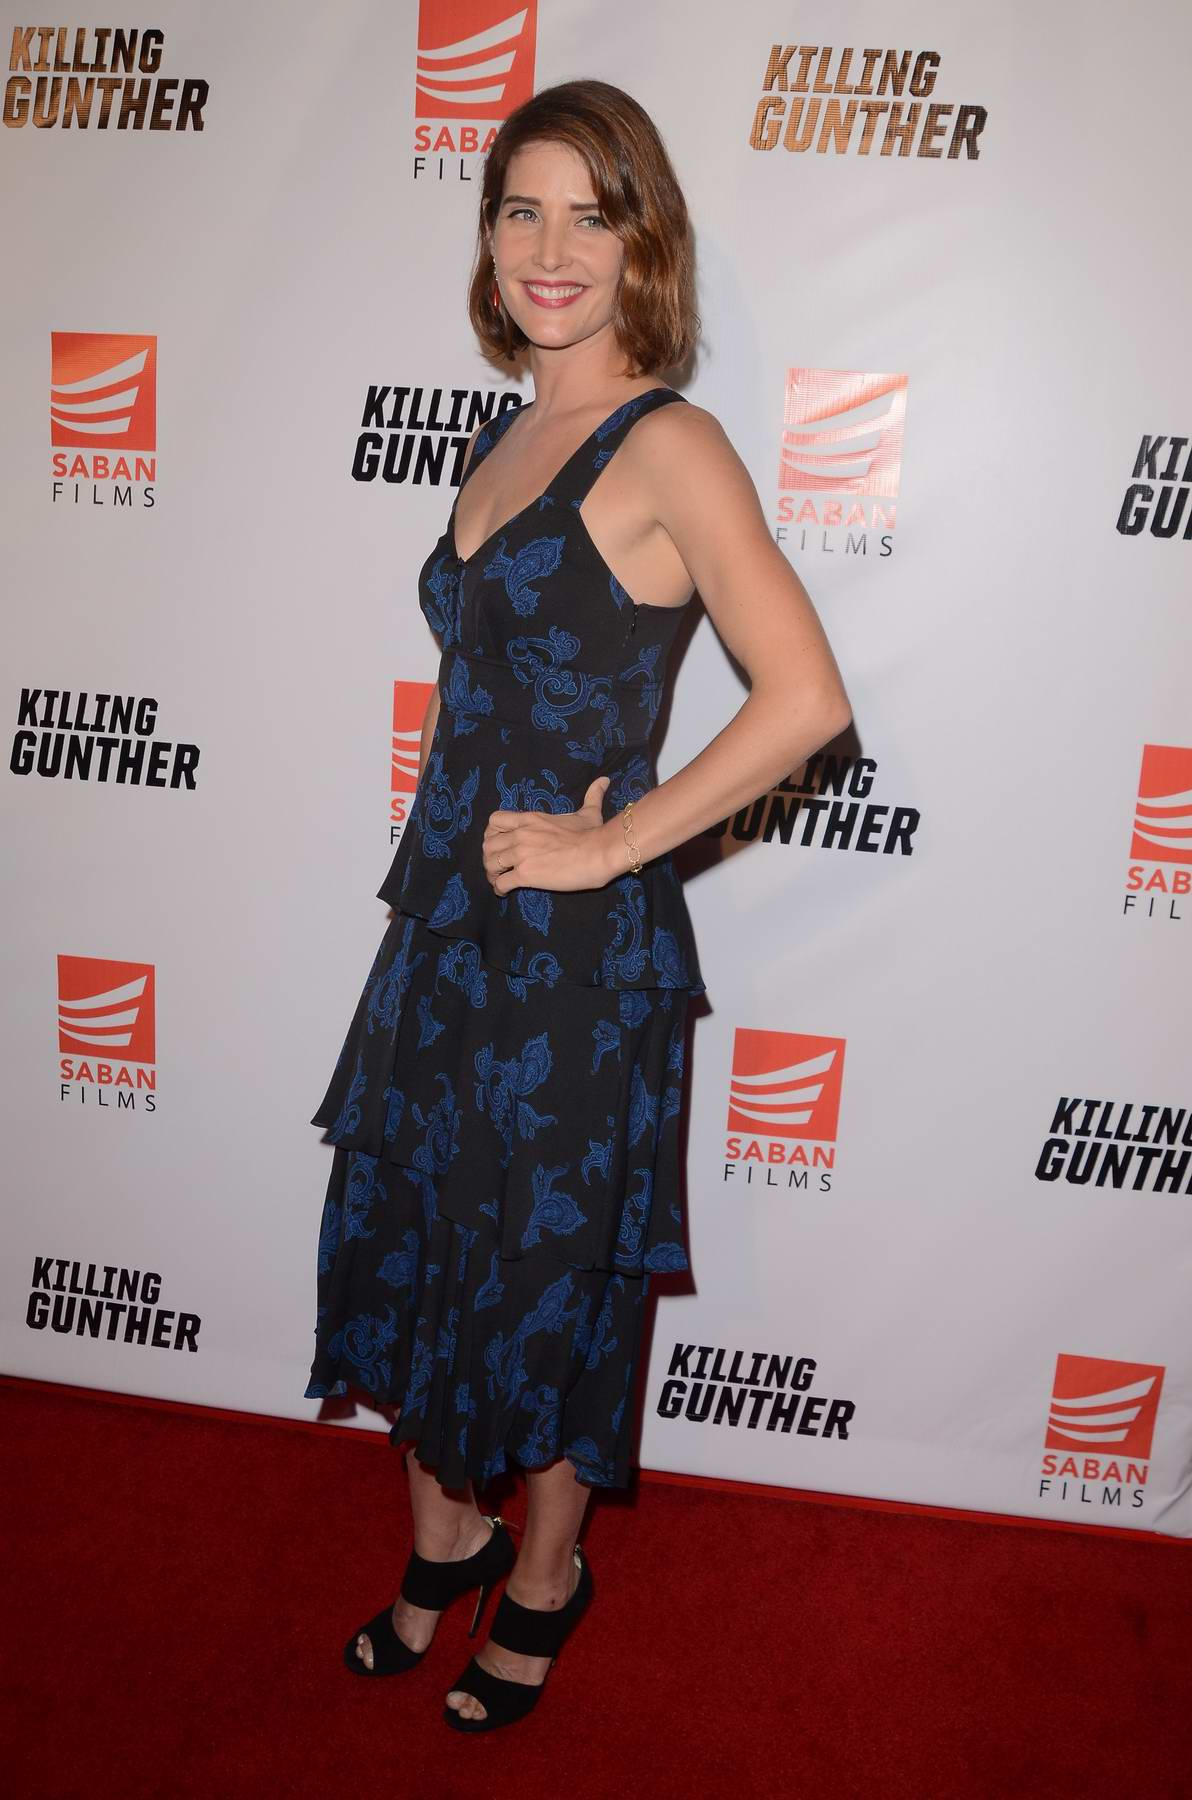 Cobie Smulders at the screening of Killing Gunther in Los Angeles